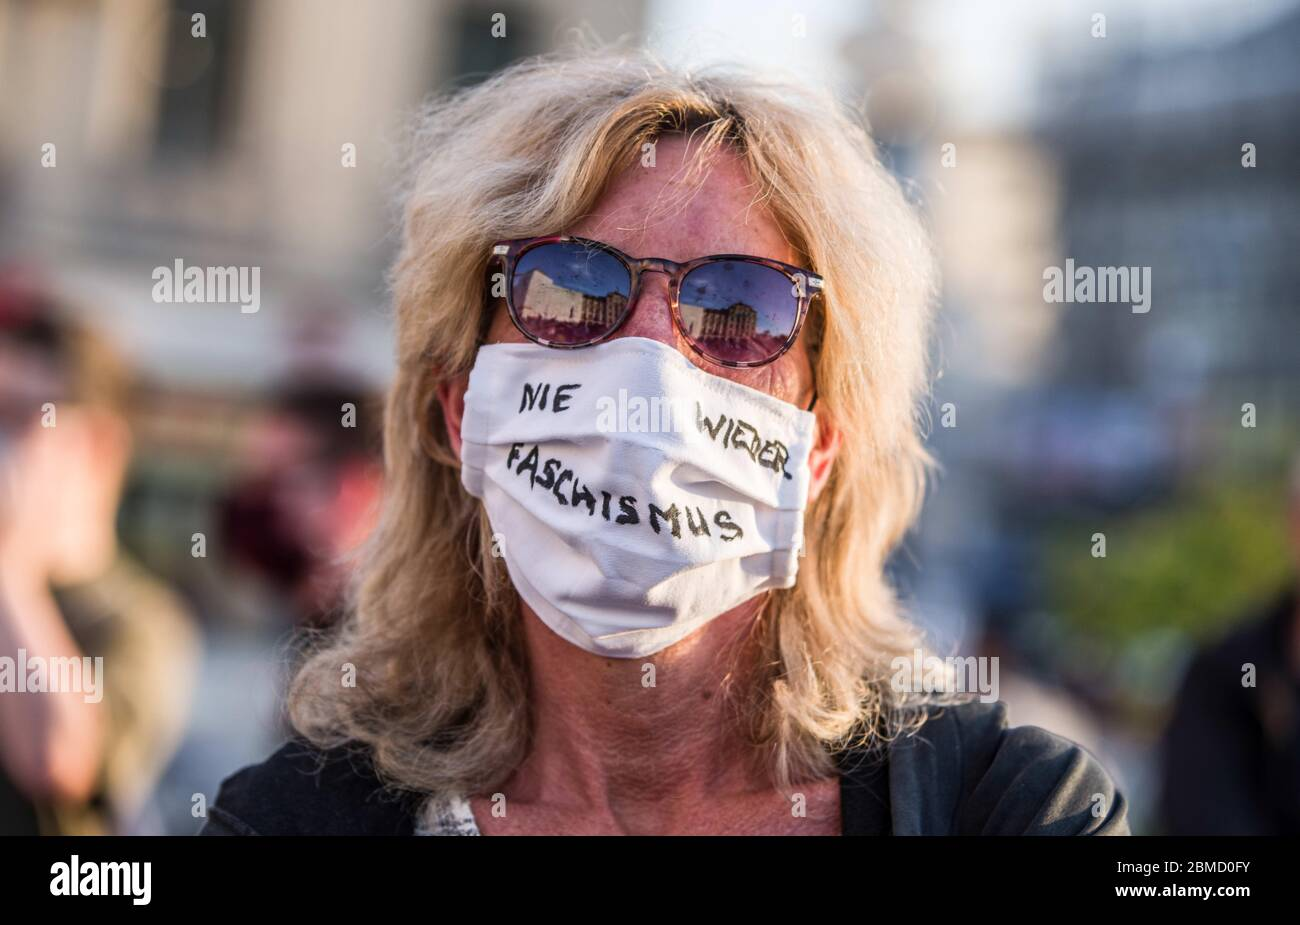 May 8, 2020, Munich, Bavaria, Germany: A demonstrator against neonazis at Munich's Stachus has ''nie wieder Faschismus'' (Never Again to Fascism) written on her mask. Also known as the Tag der Befreiung, neonazis from III. Weg led by multi-activist Roland Wuttke and convicted terrorist Karl Heinz Statzberger took advantage of the relaxing of anti-Coronavirus measures to demonstrate at Munich's Stachus. Due to today being the 75th anniversary of the unconditional surrender of the German military in WWII, this action is being seen as a provocation. Credit: ZUMA Press, Inc./Alamy Live News Stock Photo